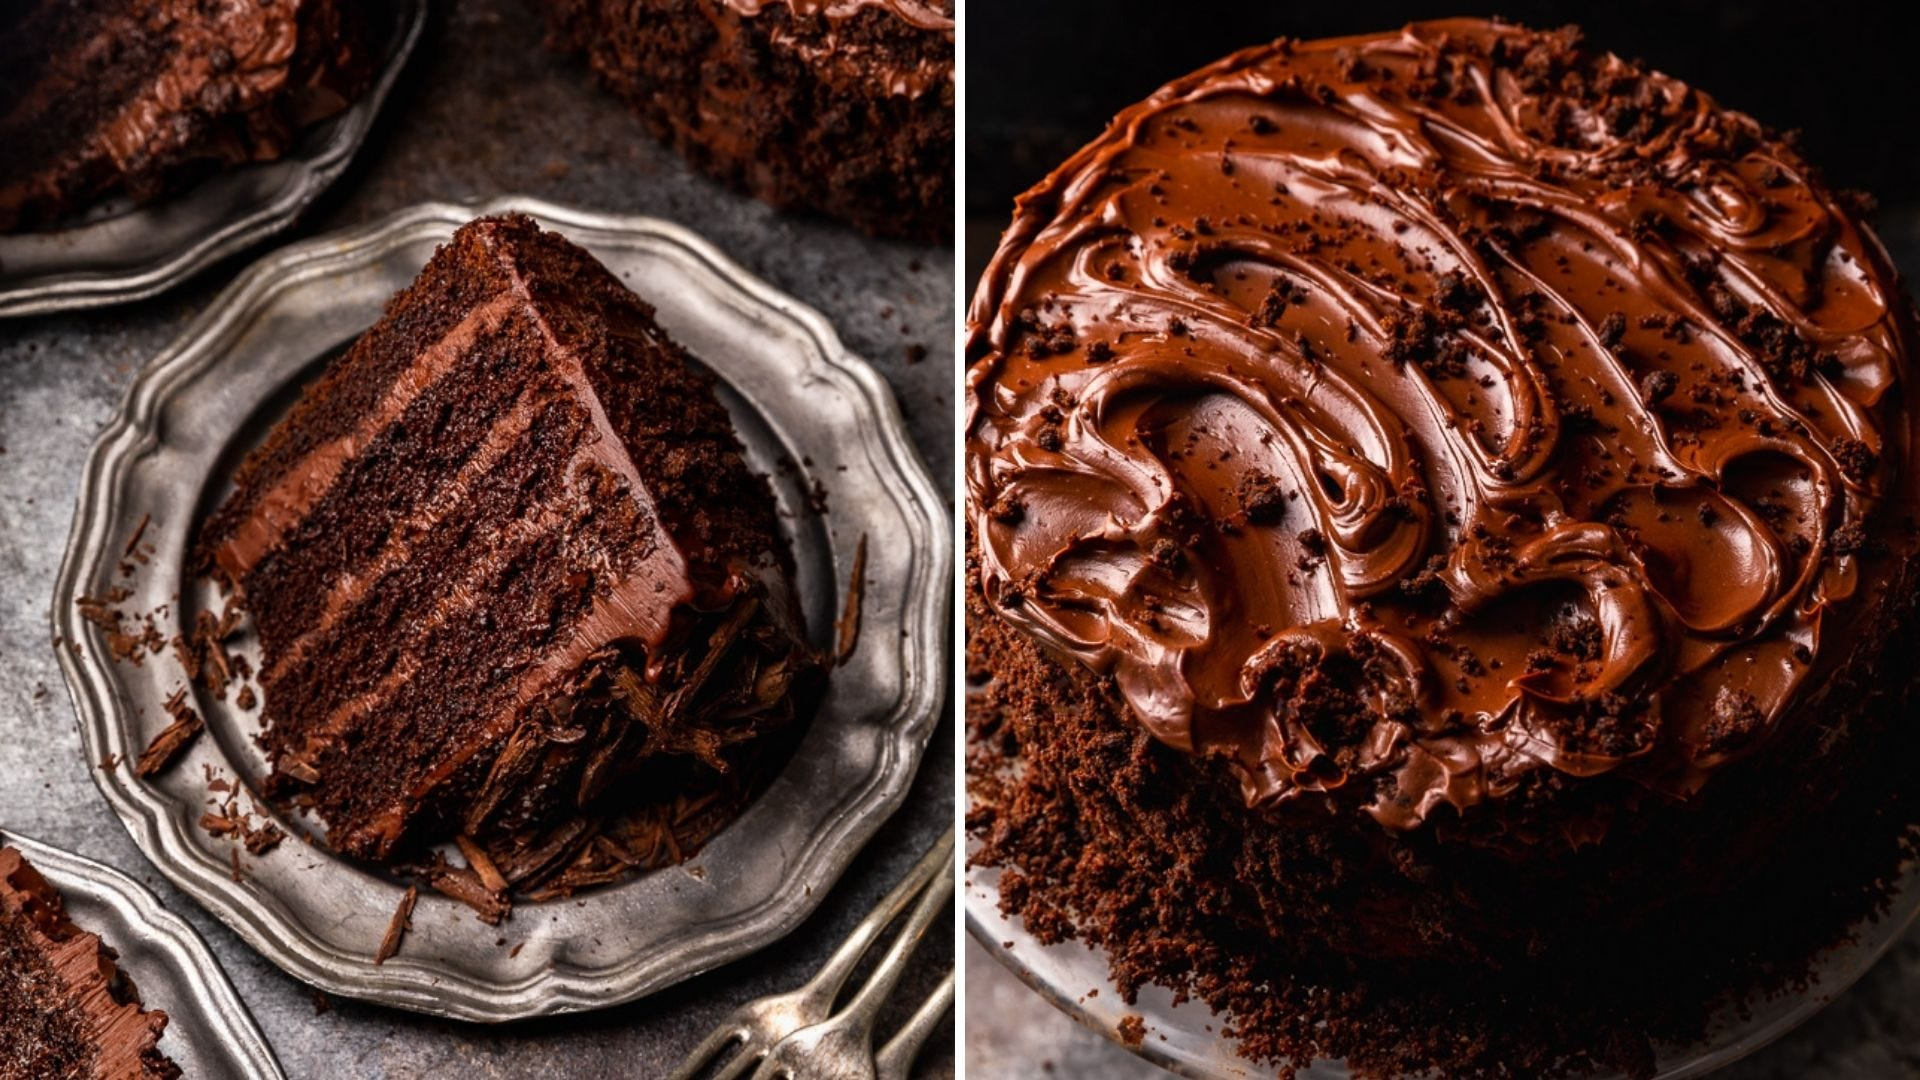 A slice of Devil's food cake and a full chocolate cake